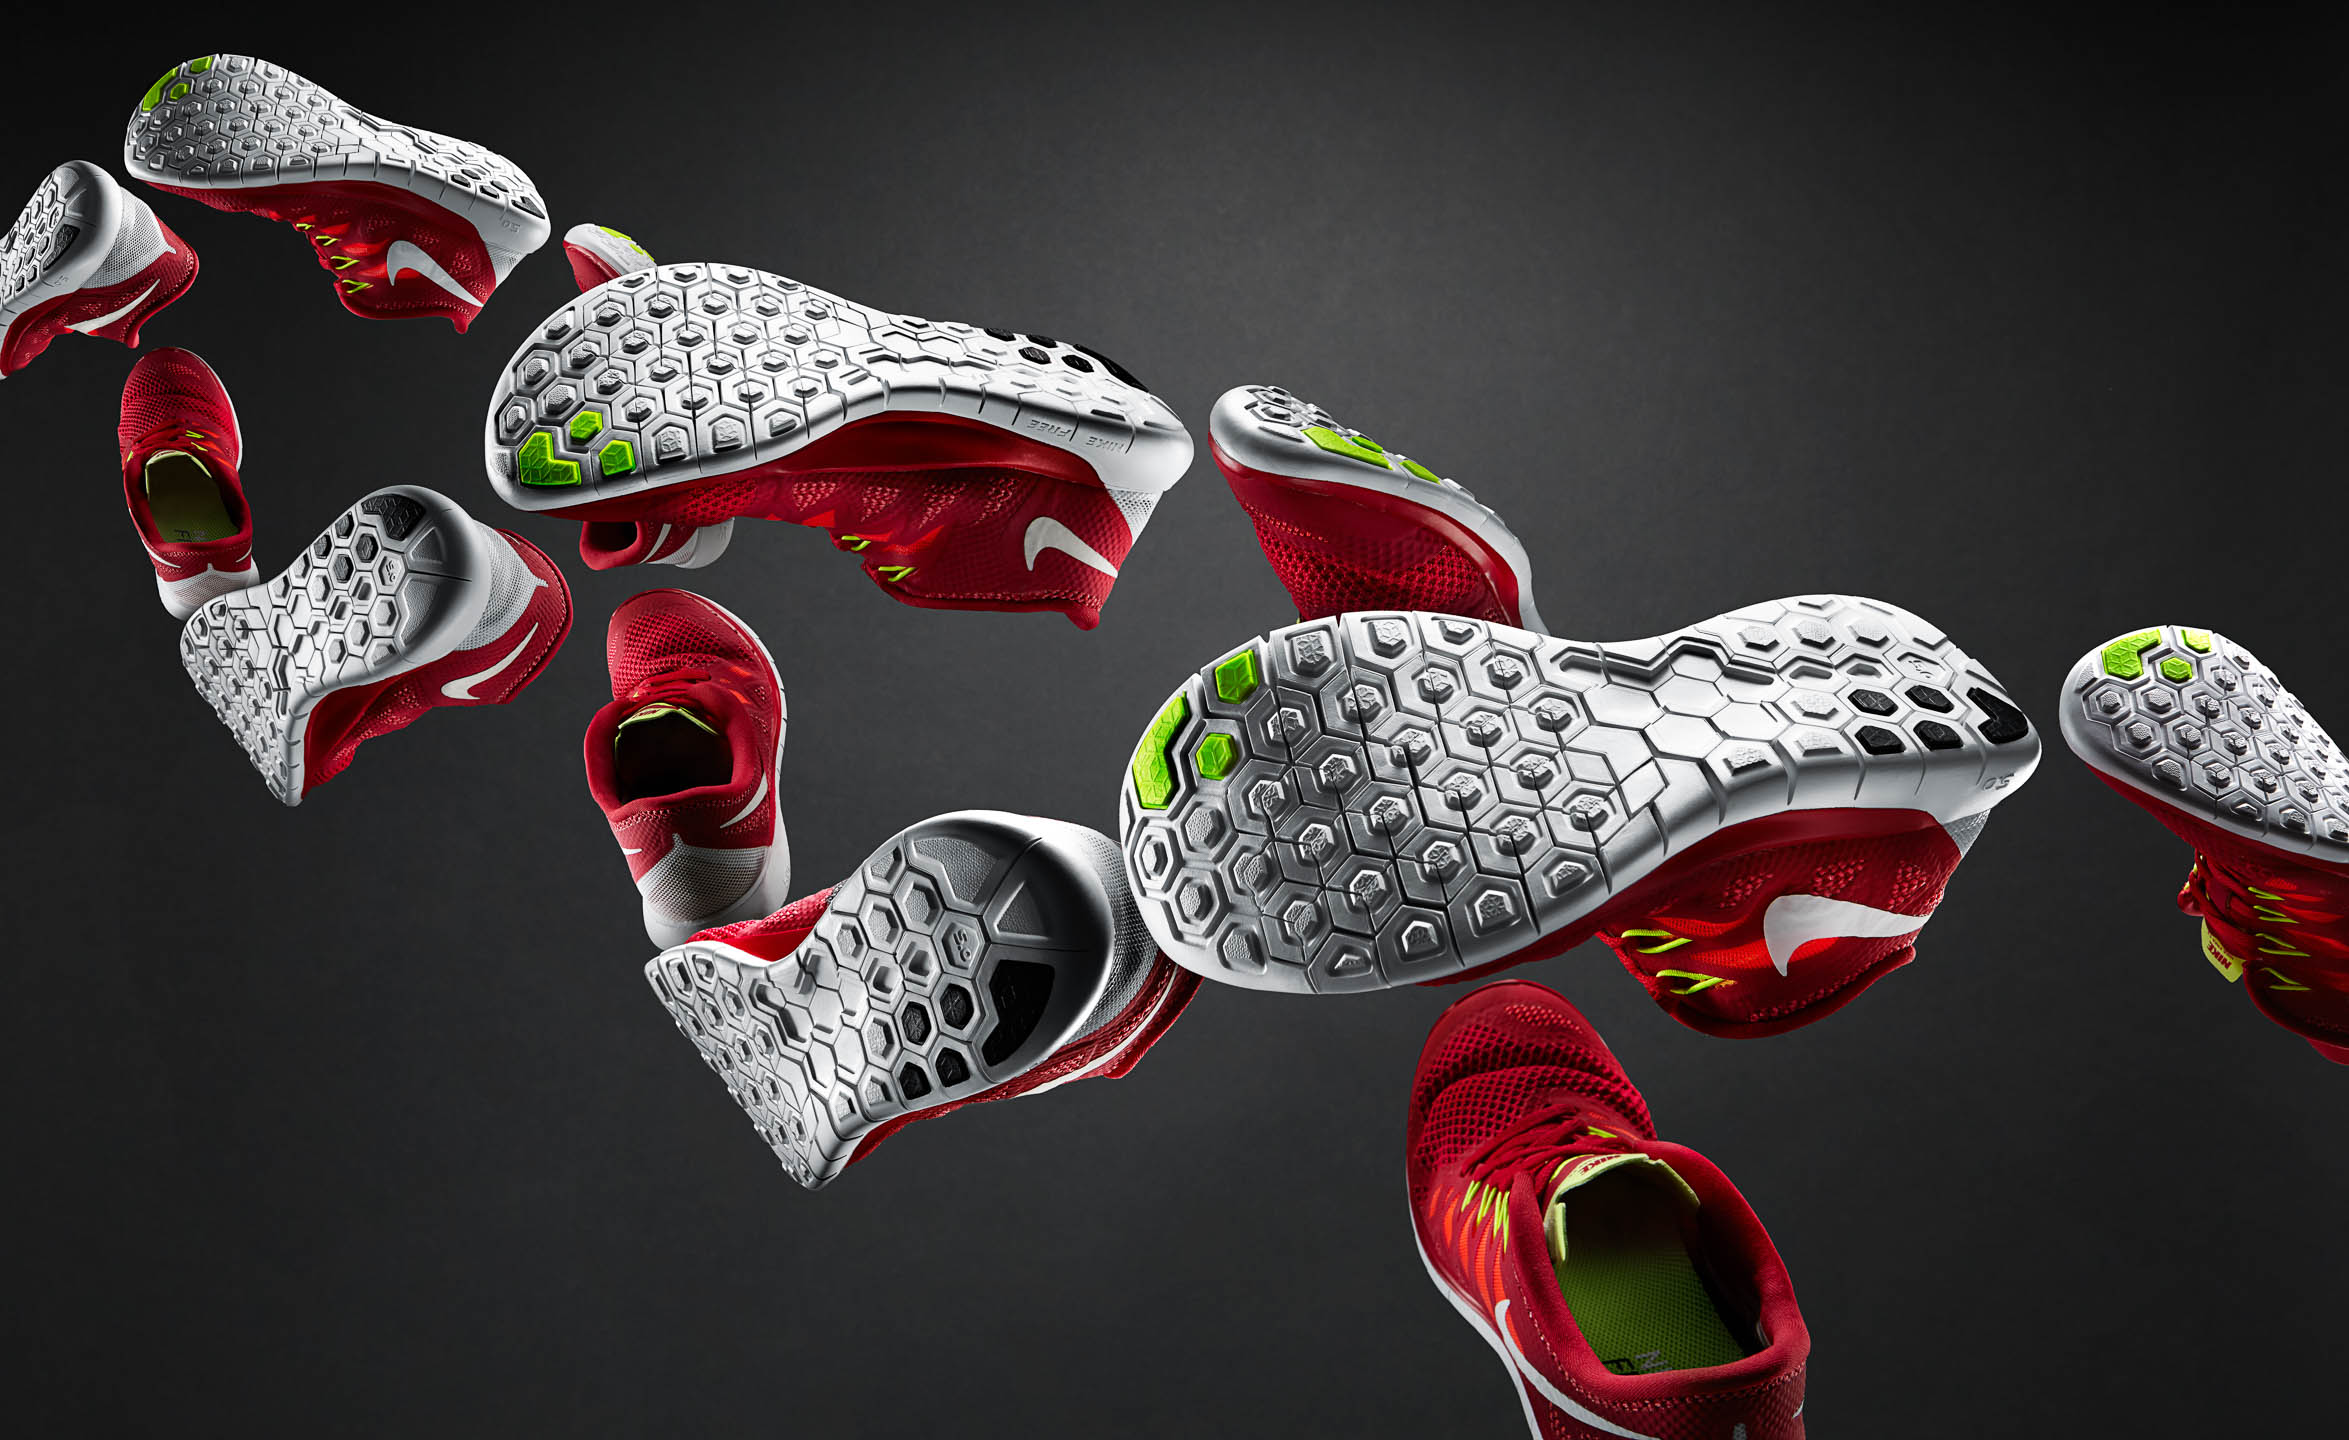 Nike Free 5.0 running shoe in DNA helix by Steve Temple Photography